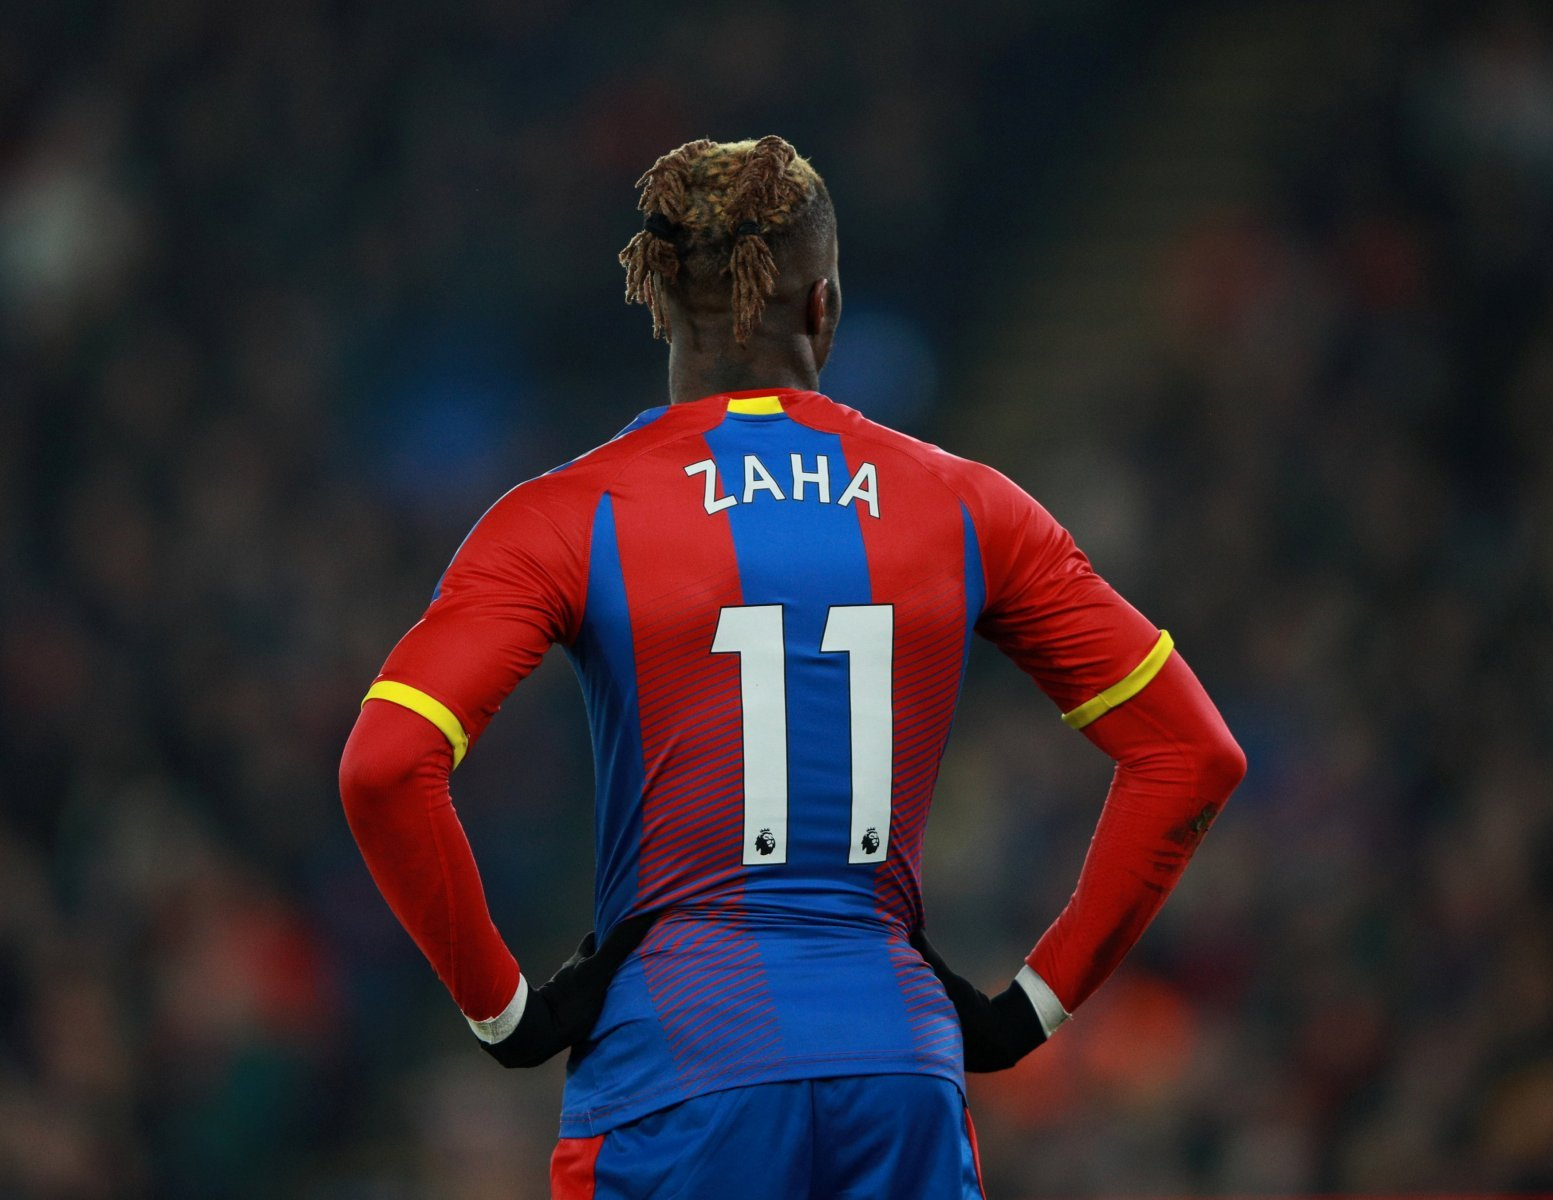 Crystal Palace fans take to Twitter to laud incredible WIlfried Zaha